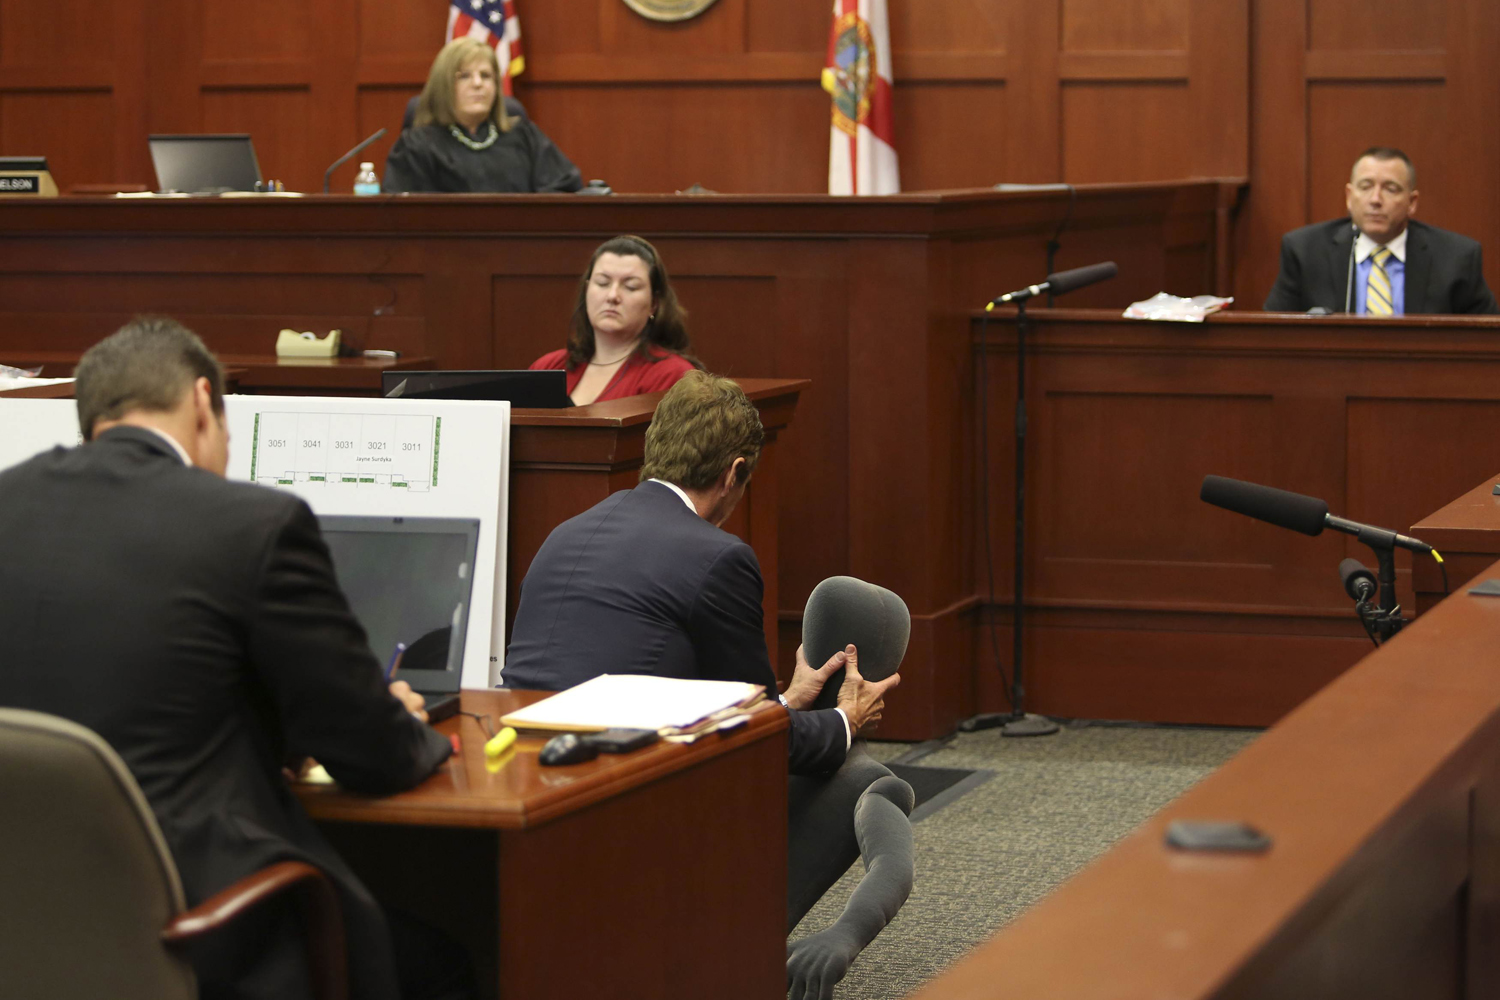 July 10, 2013. Defense attorney Mark O'Mara uses a foam dummy to describe the altercation between George Zimmerman and Trayvon Martin to defense witness and law enforcement expert Dennis Root  (R) during Zimmerman's trial in Seminole circuit court in Sanford, Fla.